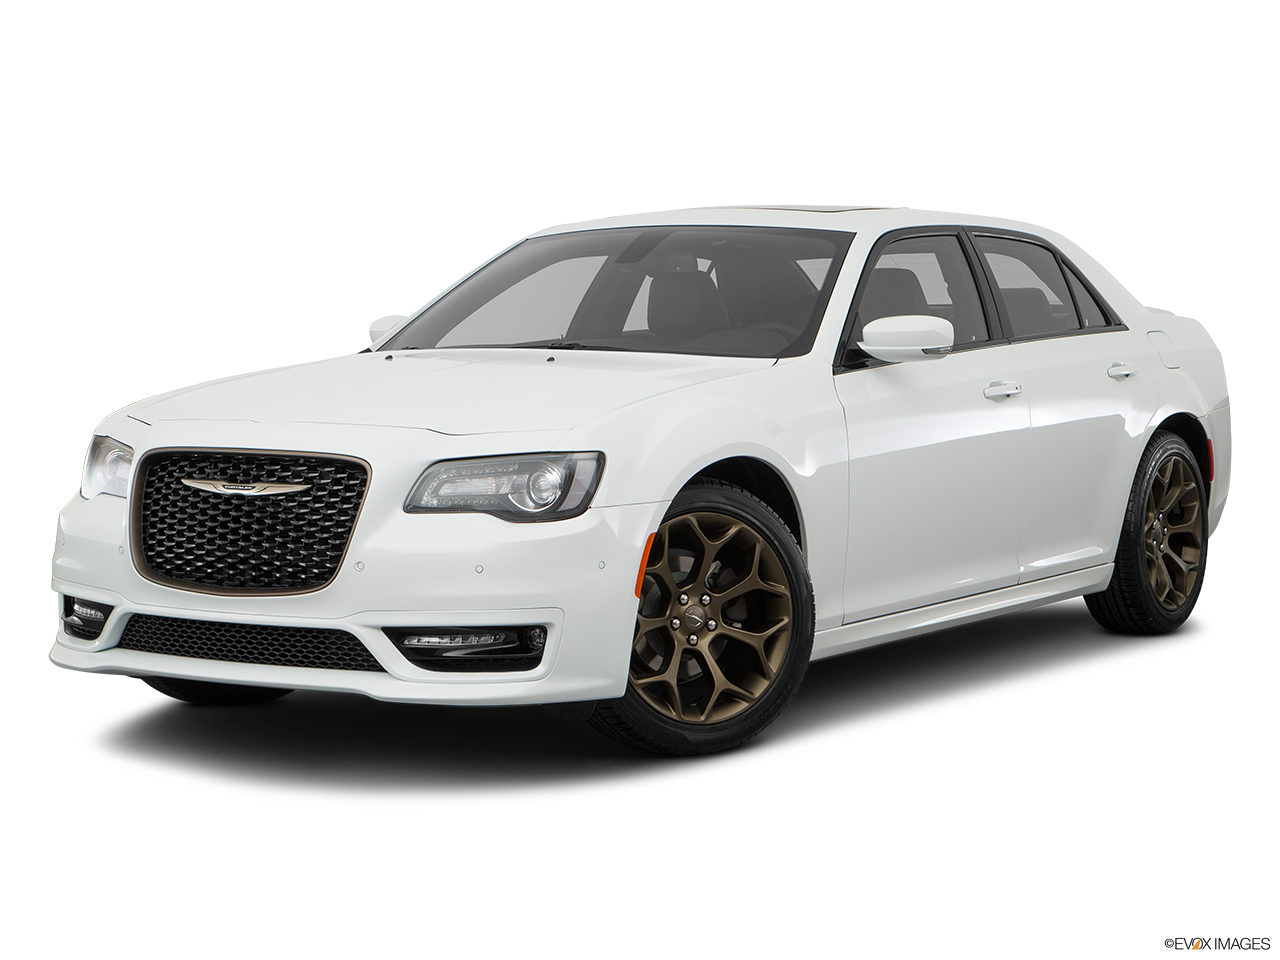 Test Drive A 2017 Chrysler 300 at Premier Chrysler in Tracy